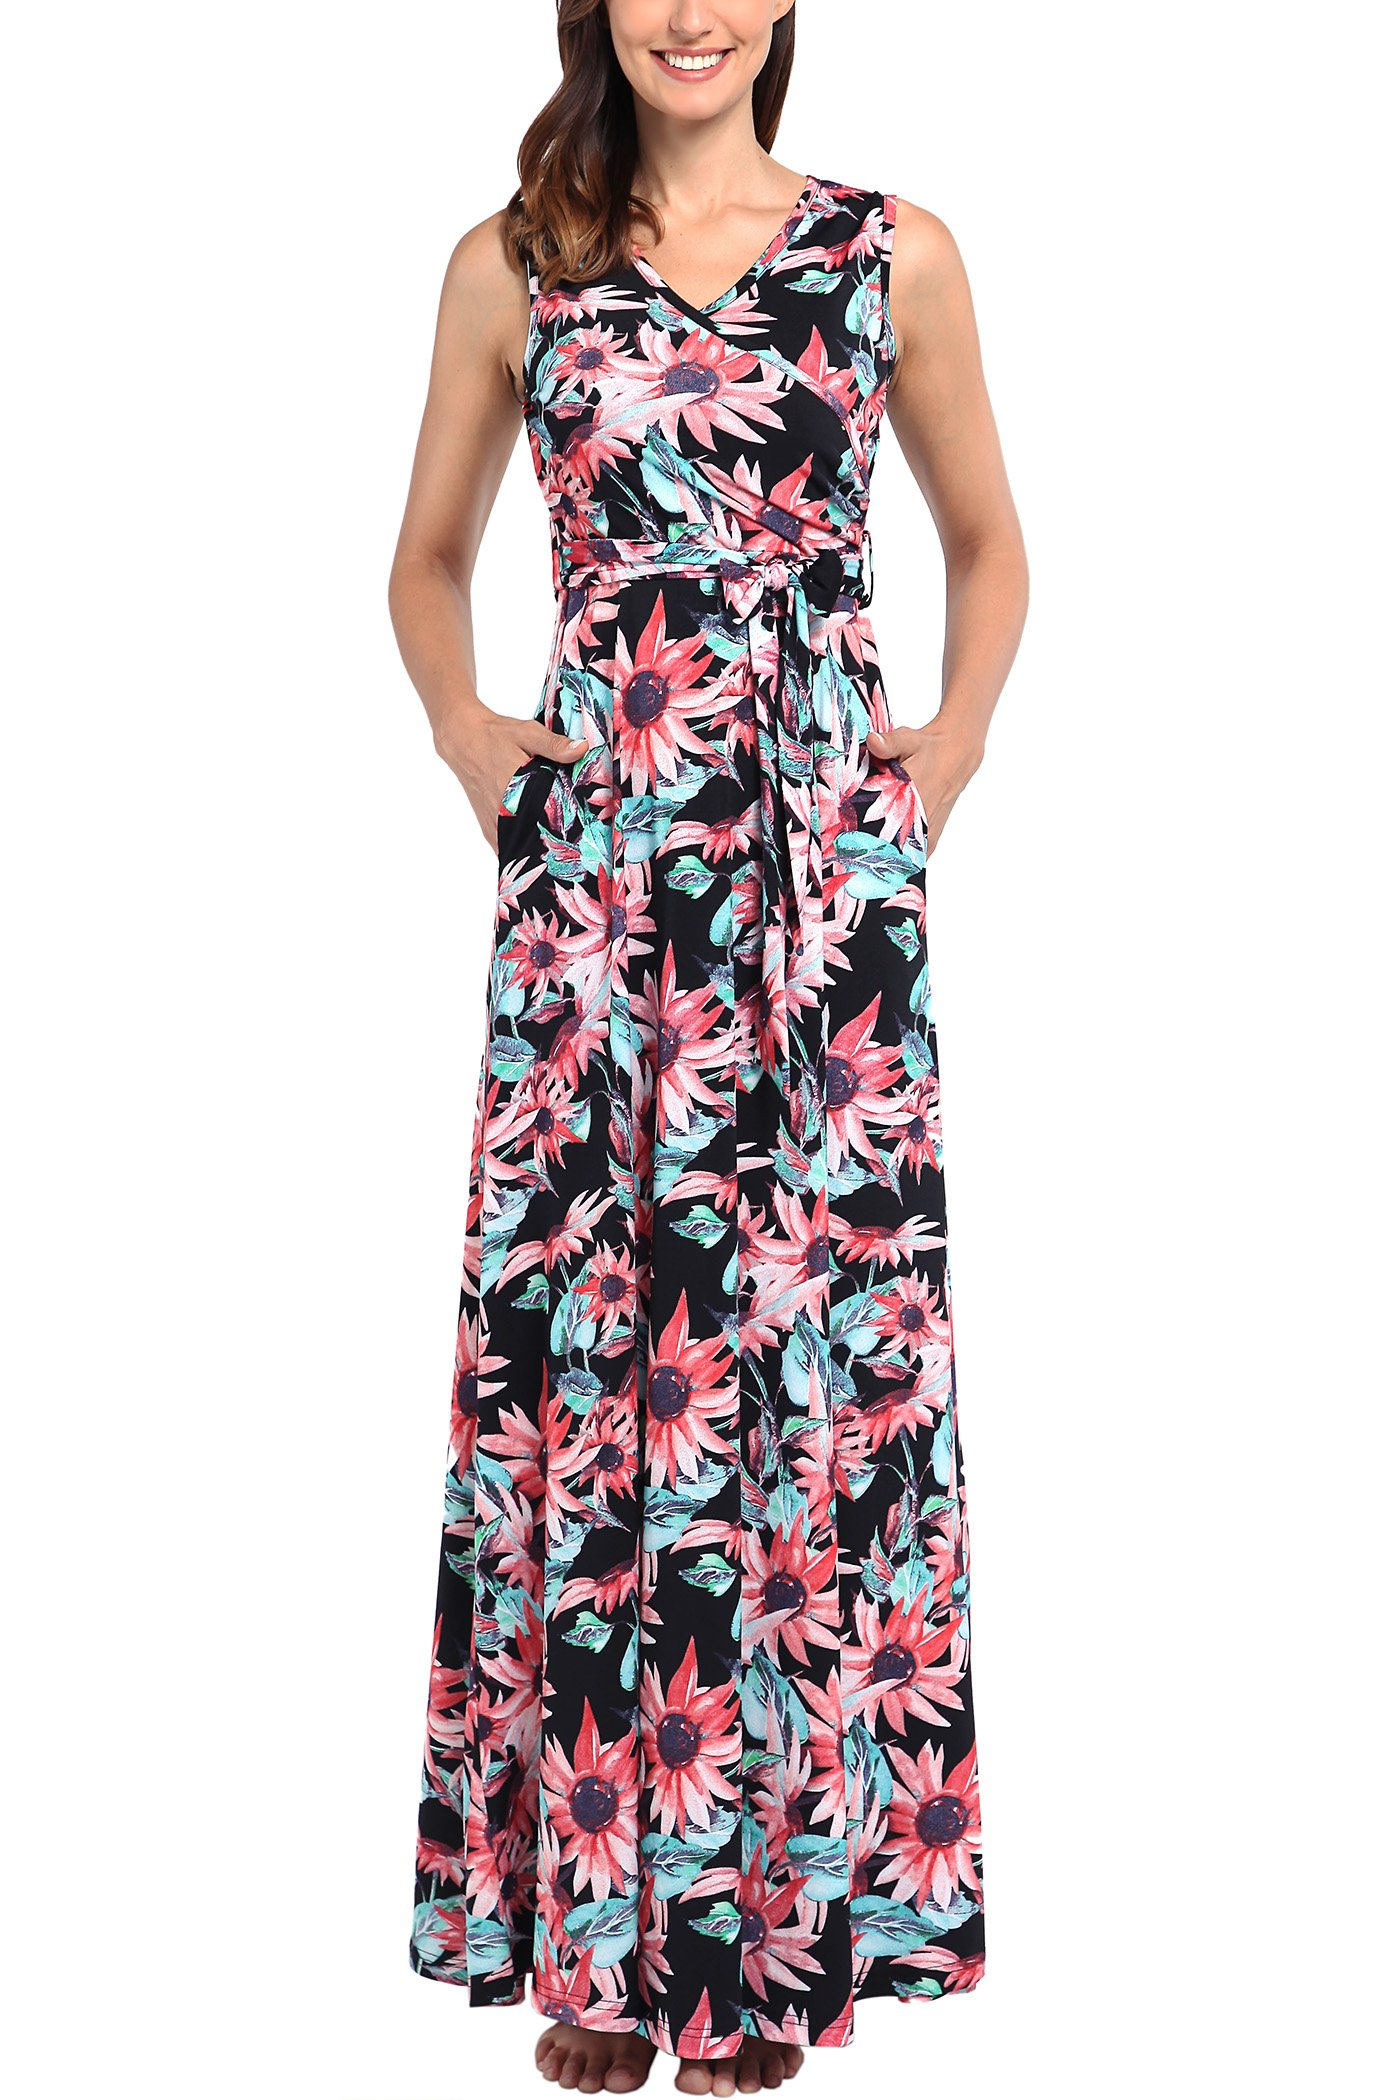 Comila Summer Dress for Women, Vintage Floral Printed Sexy Warp V Neck Loose Plain Maxi Dress with Pockets Elegant Beach Party Casual Long Dresses Multicolored S(US4-6)